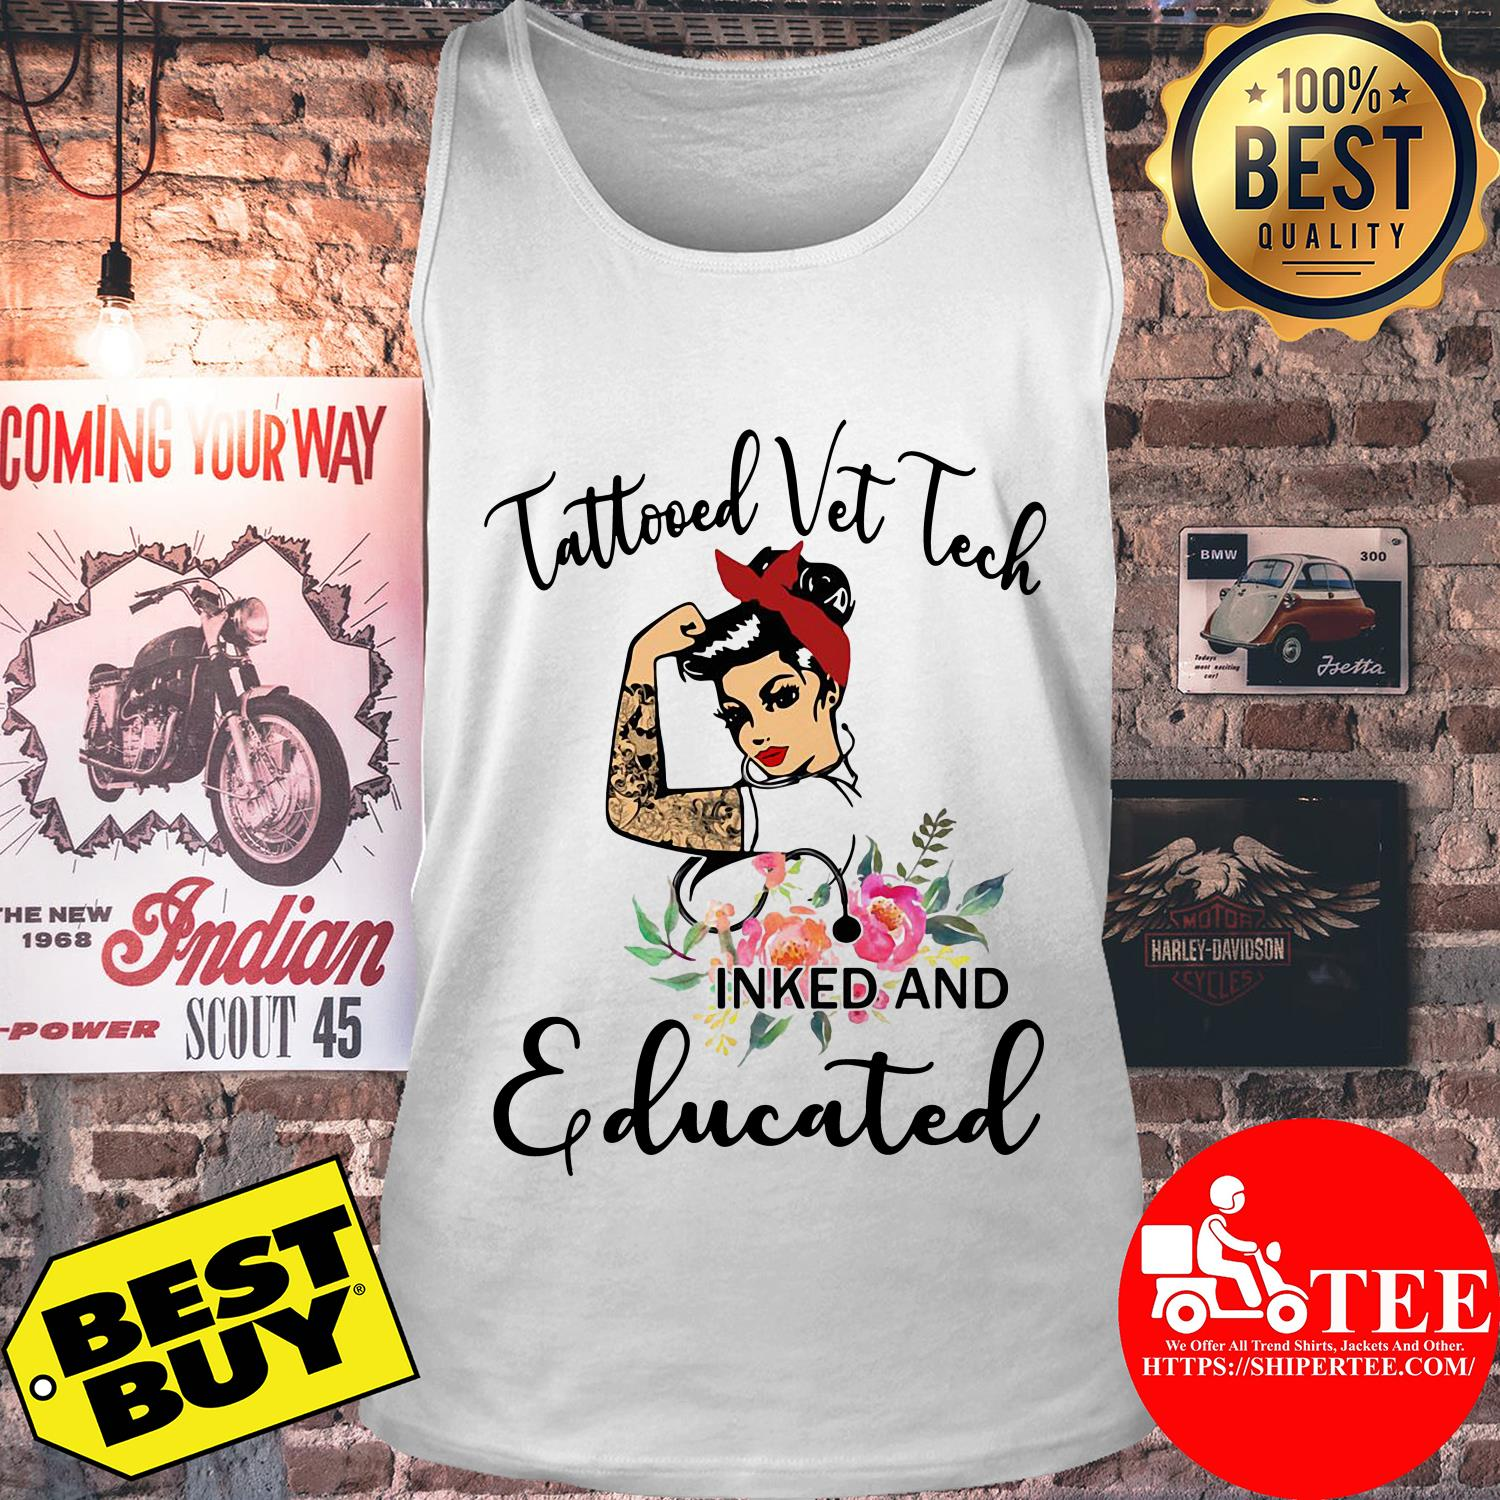 Tattooed vet tech inked and educated tank top